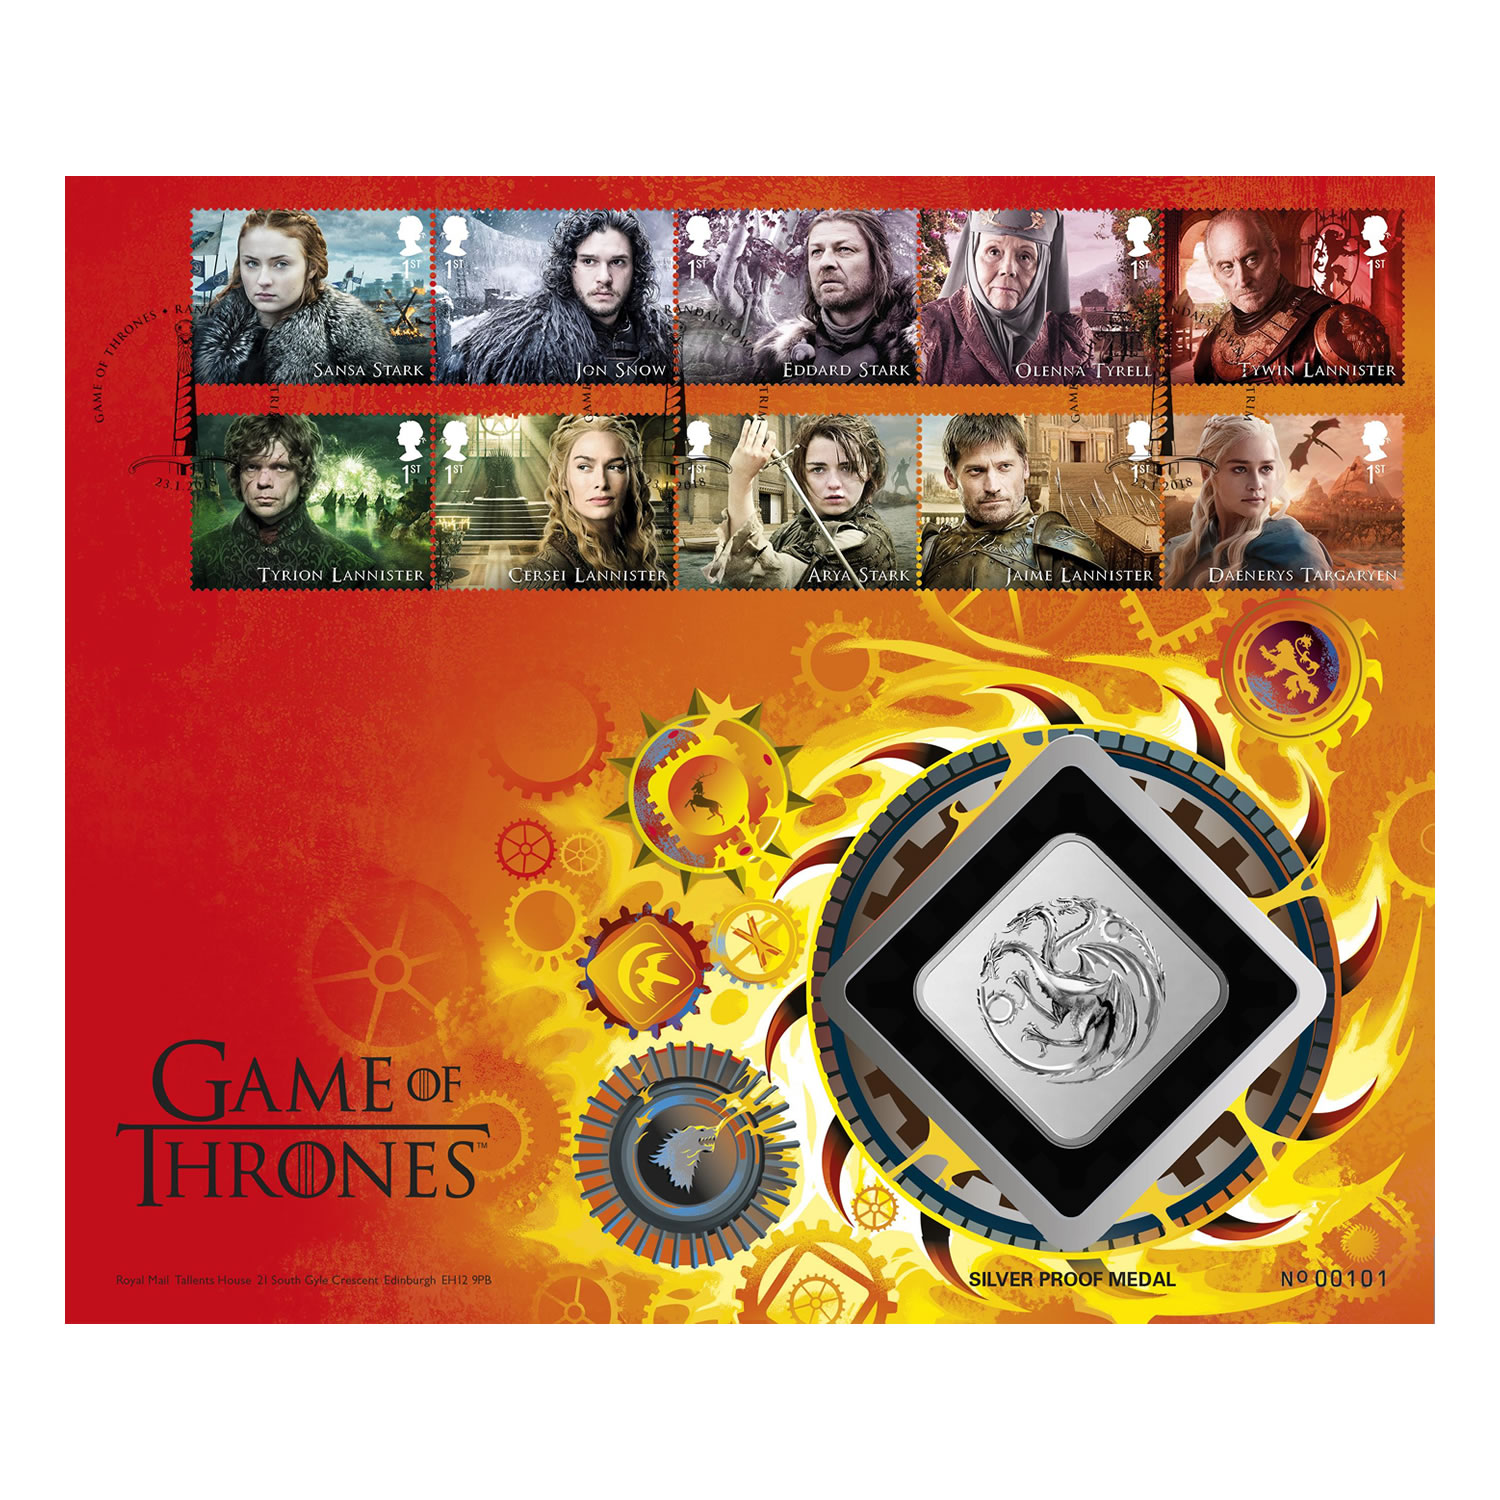 Game of Thrones House Targaryen Silver Proof Medal Cover